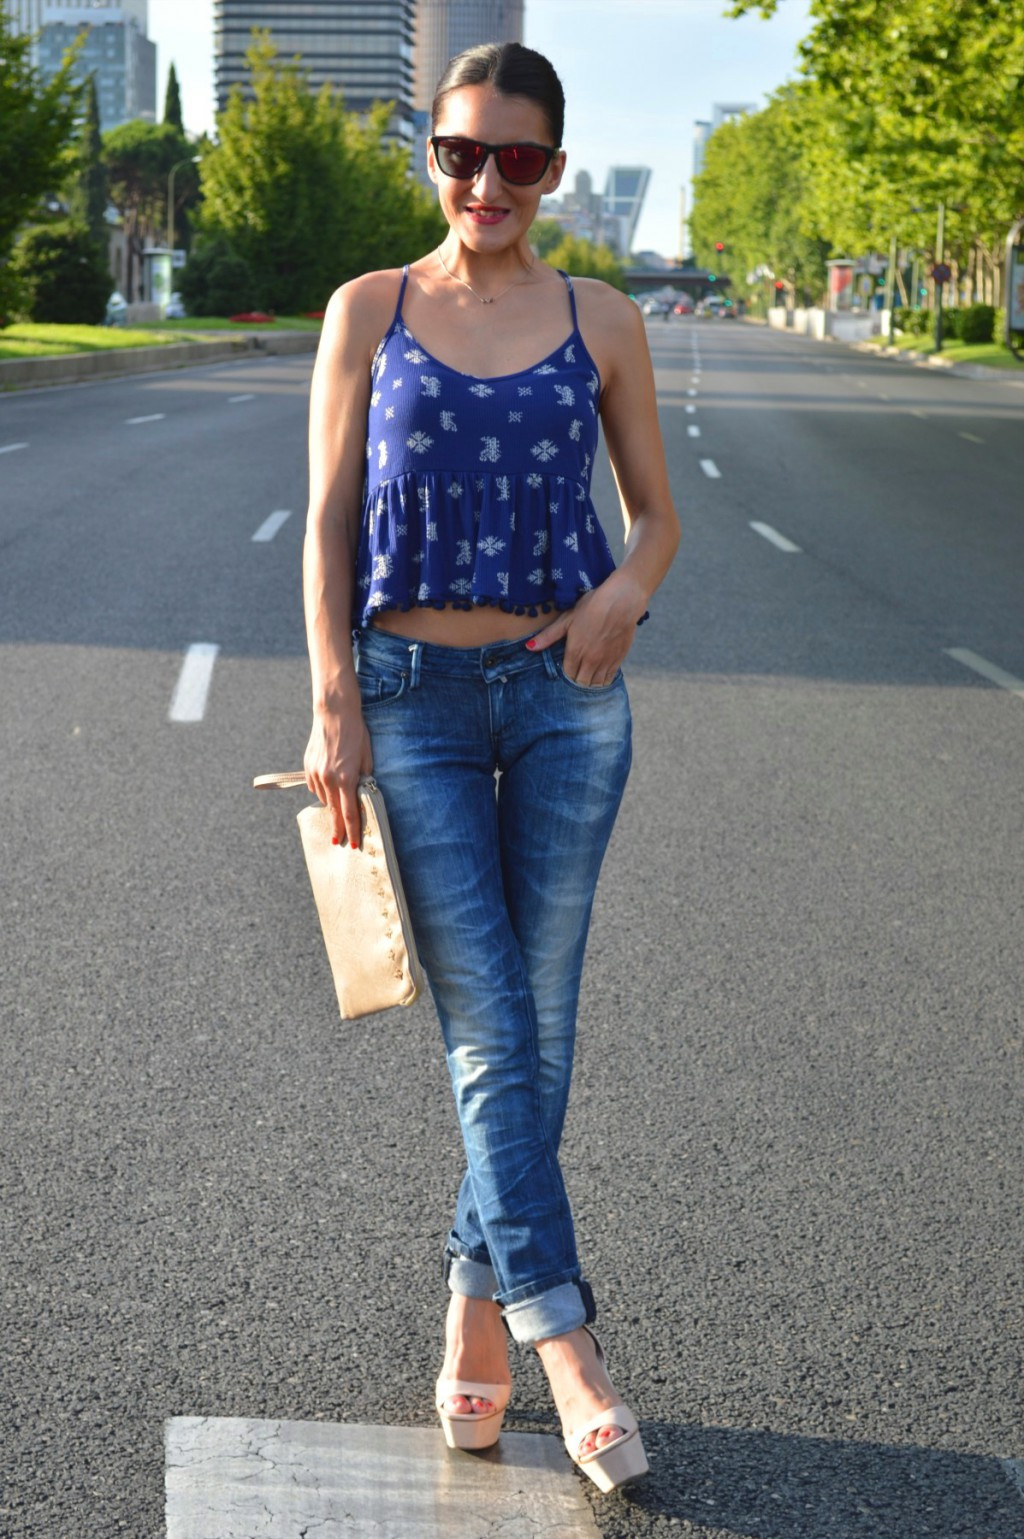 Top: Zara Jeans: Salsa jeans (old) Shoes: Zara (old) Clutch: Suiteblanco (old) Sunglasses: Oakley (New)